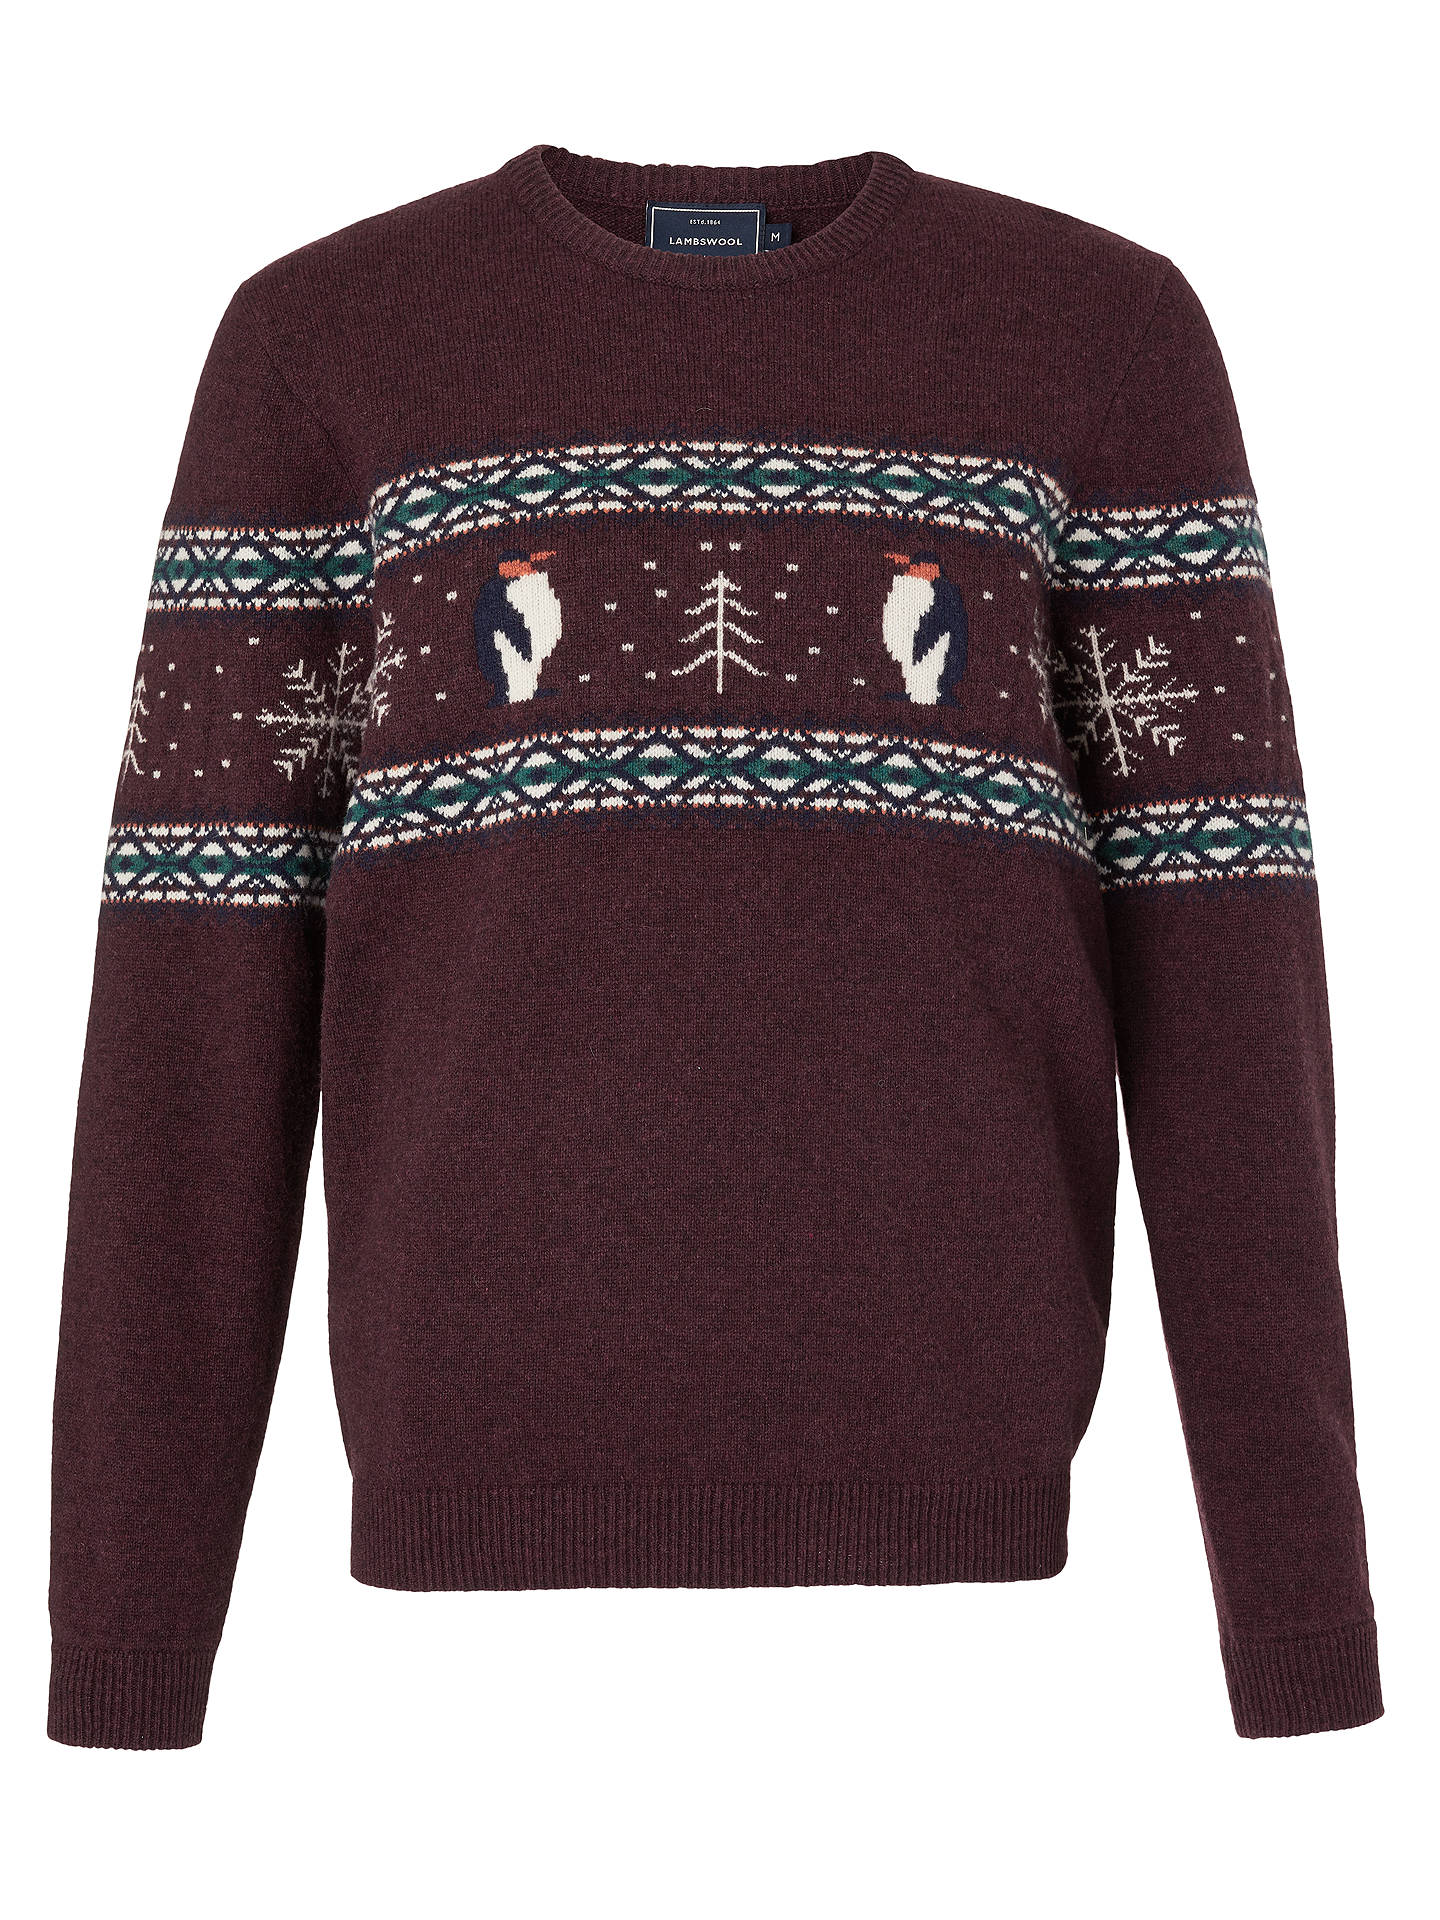 BuyJohn Lewis & Partners Christmas Lambswool Charity Penguin Jumper, Red, M Online at johnlewis.com